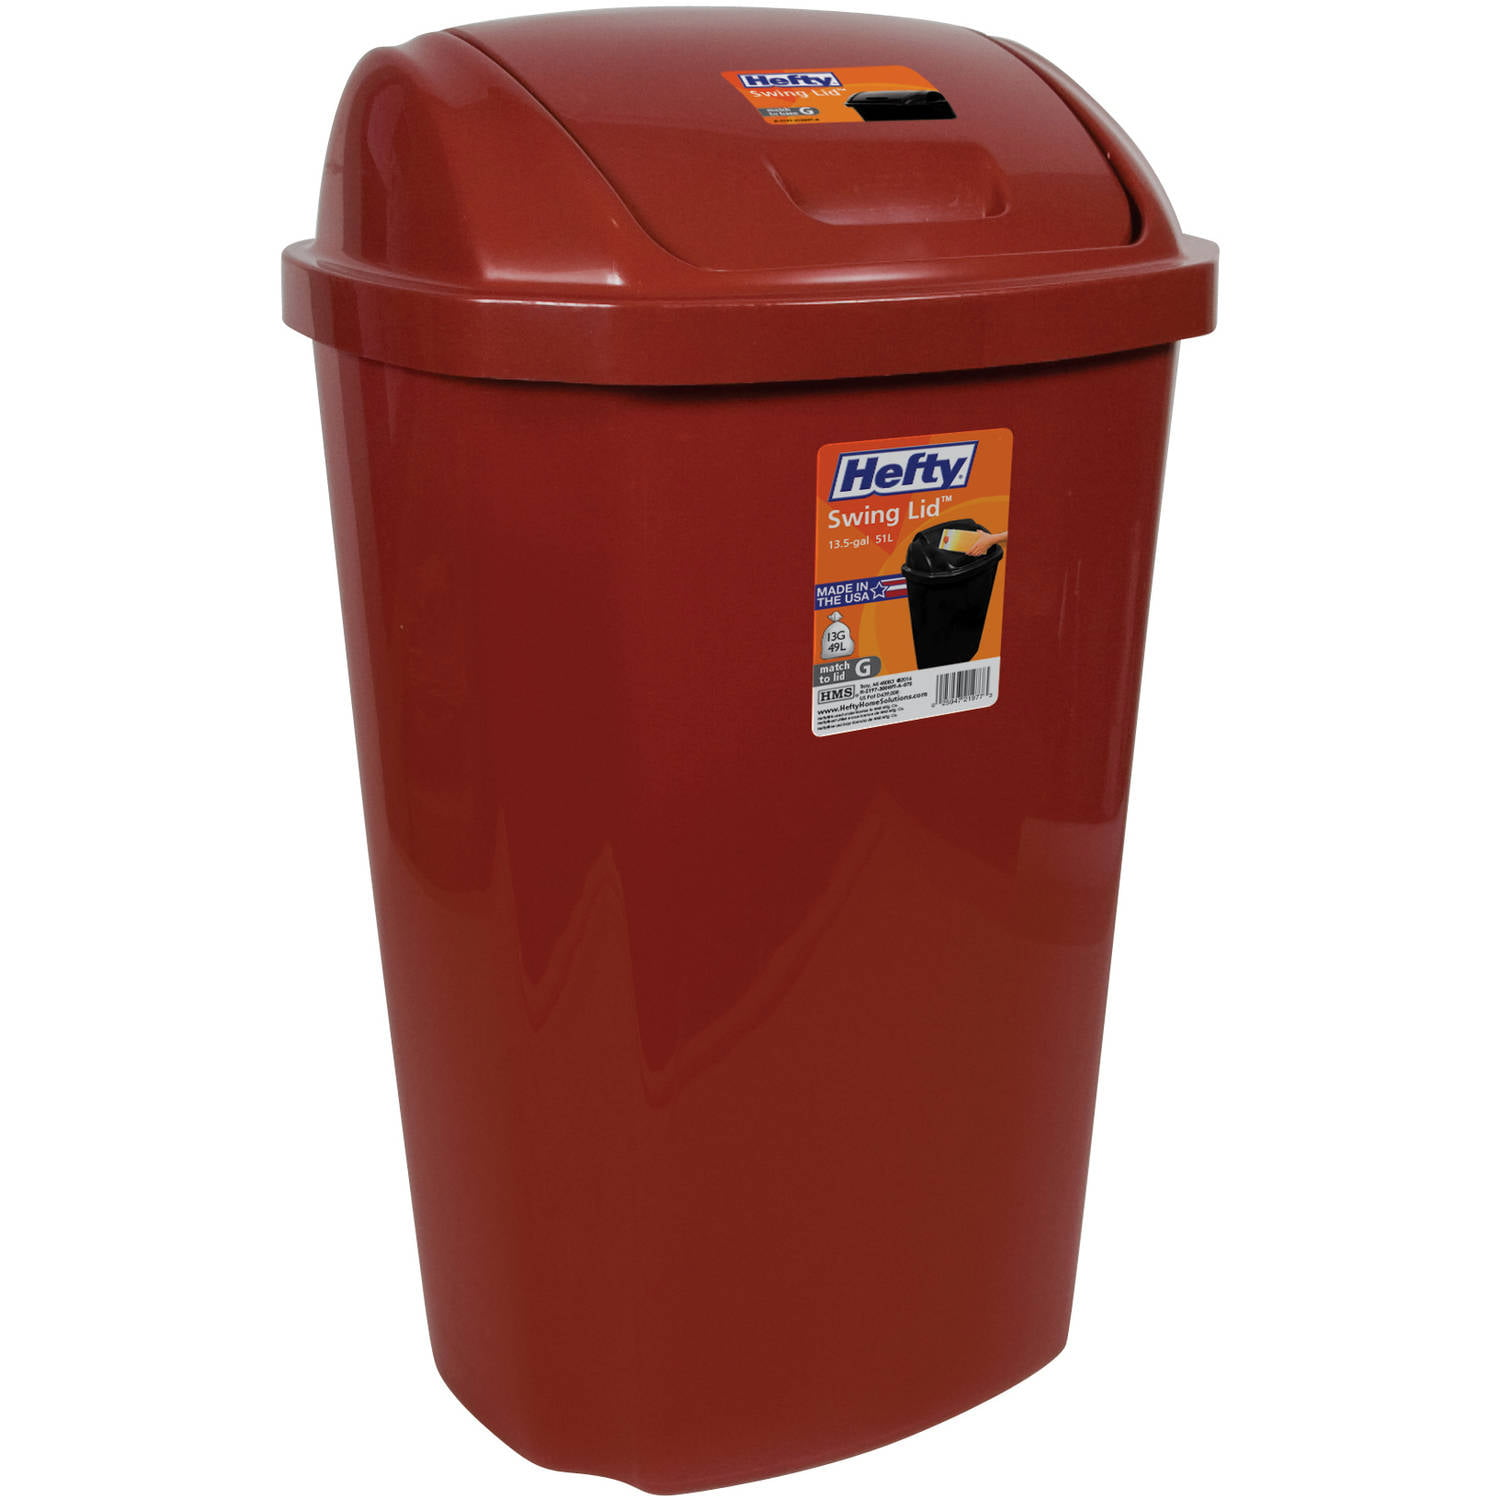 Hefty 135 Gallon Swing Lid Trash Can Red Walmartcom